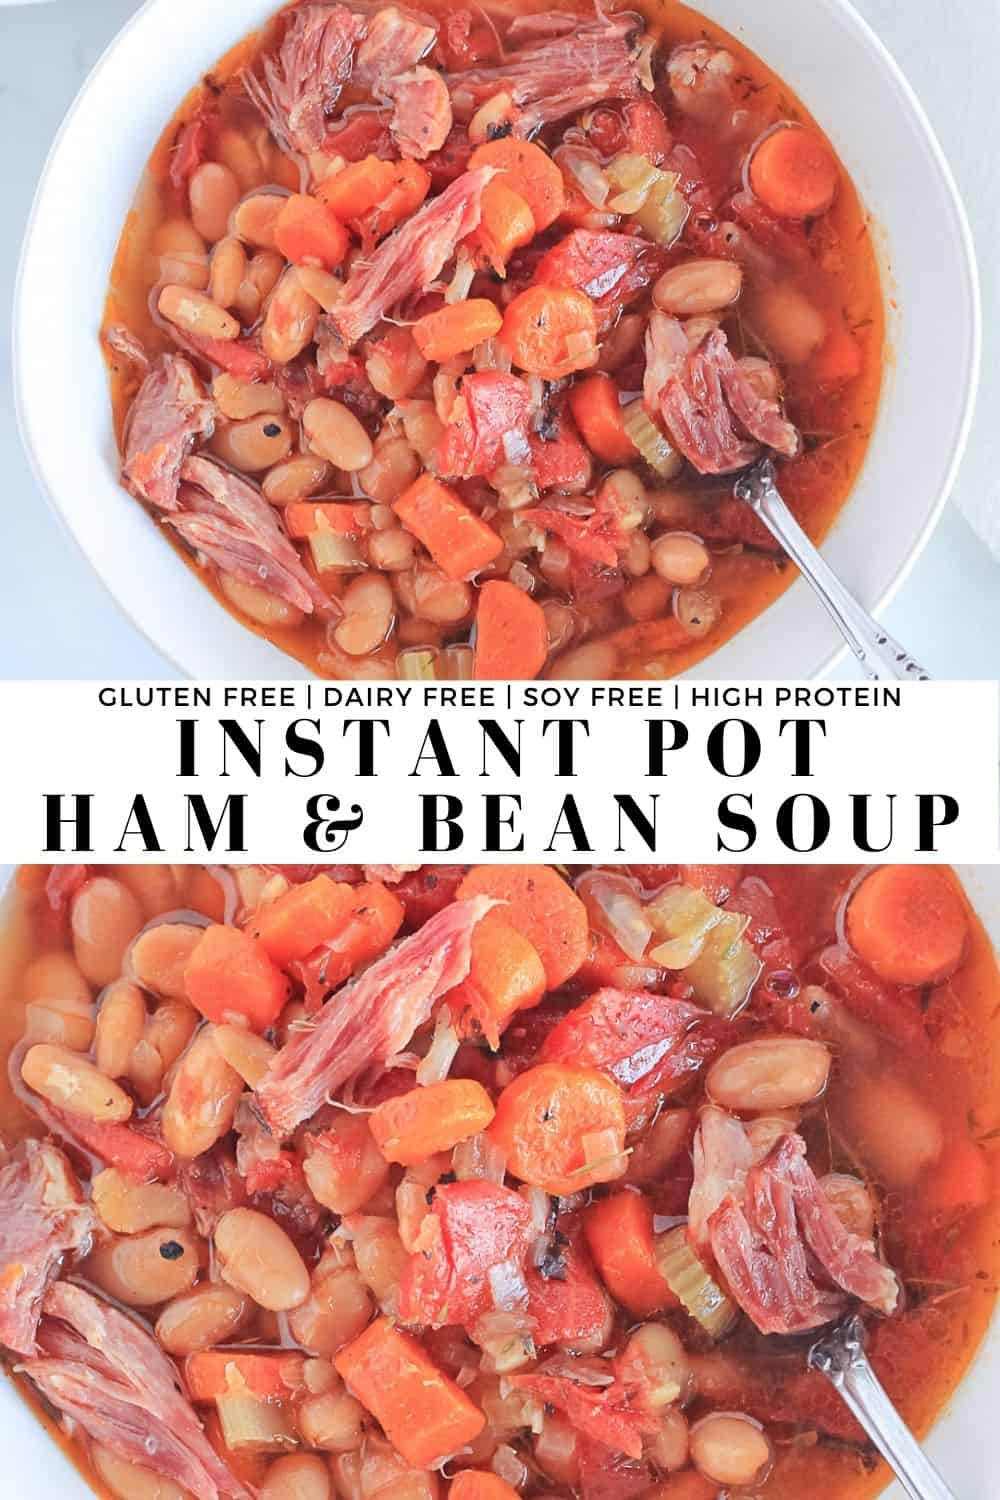 Two combined pictures of Instant Pot Ham and Bean Soup.